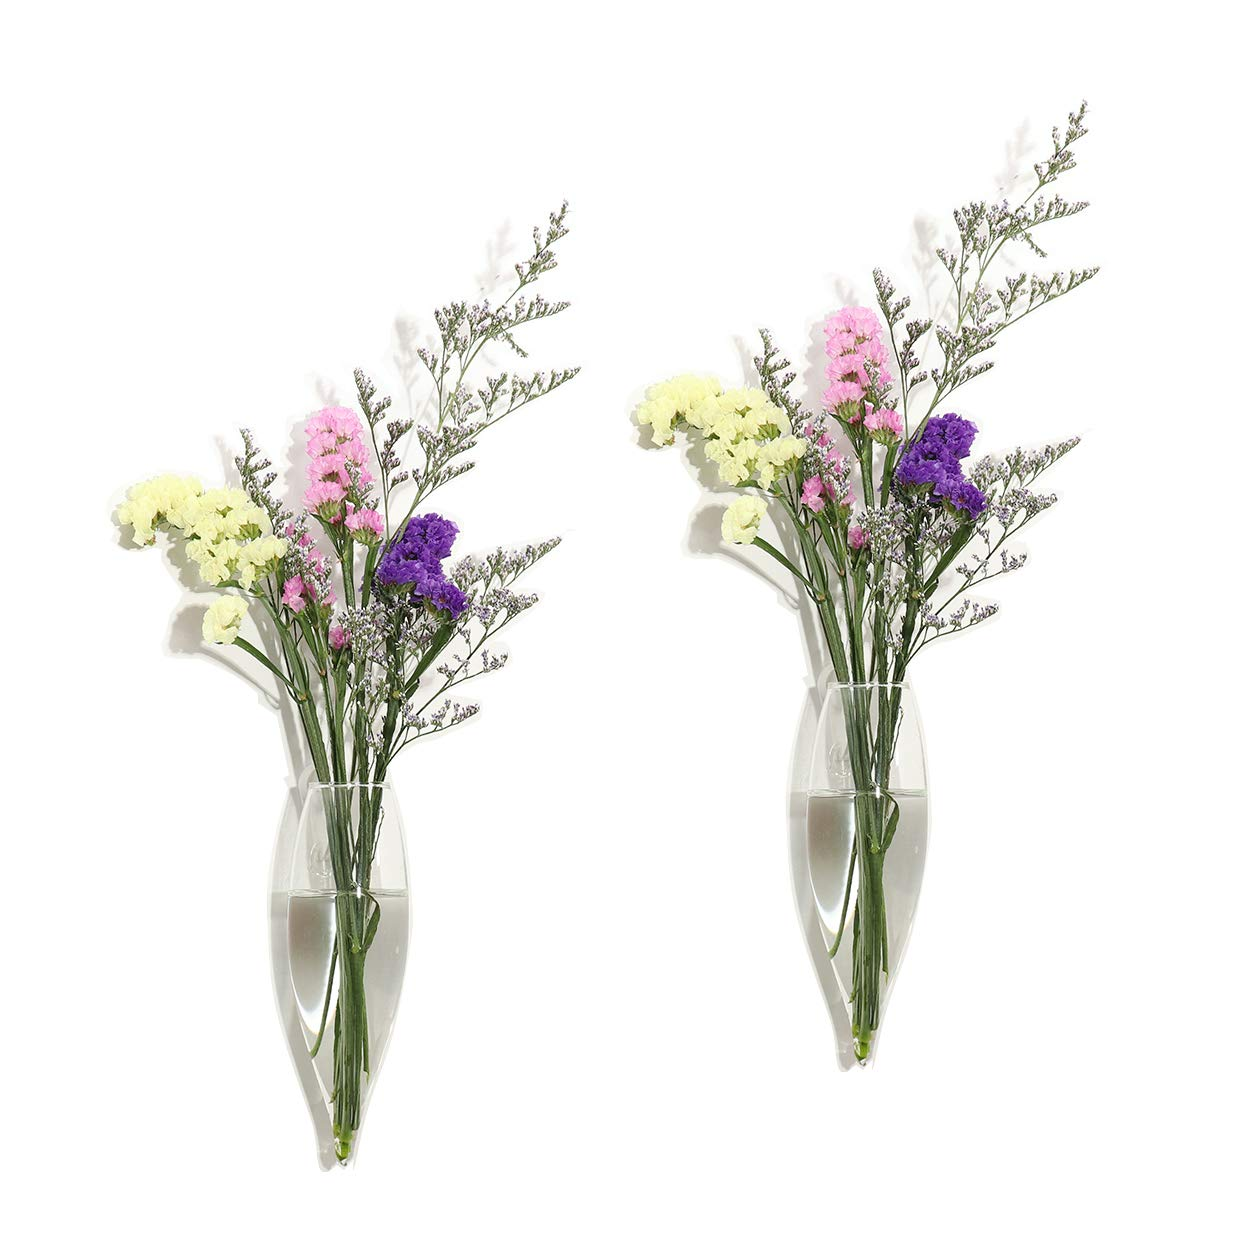 Ivolador 2PCS Icepick-shaped Wall Glass Hanging Planter for Propagating Hydroponic Plants